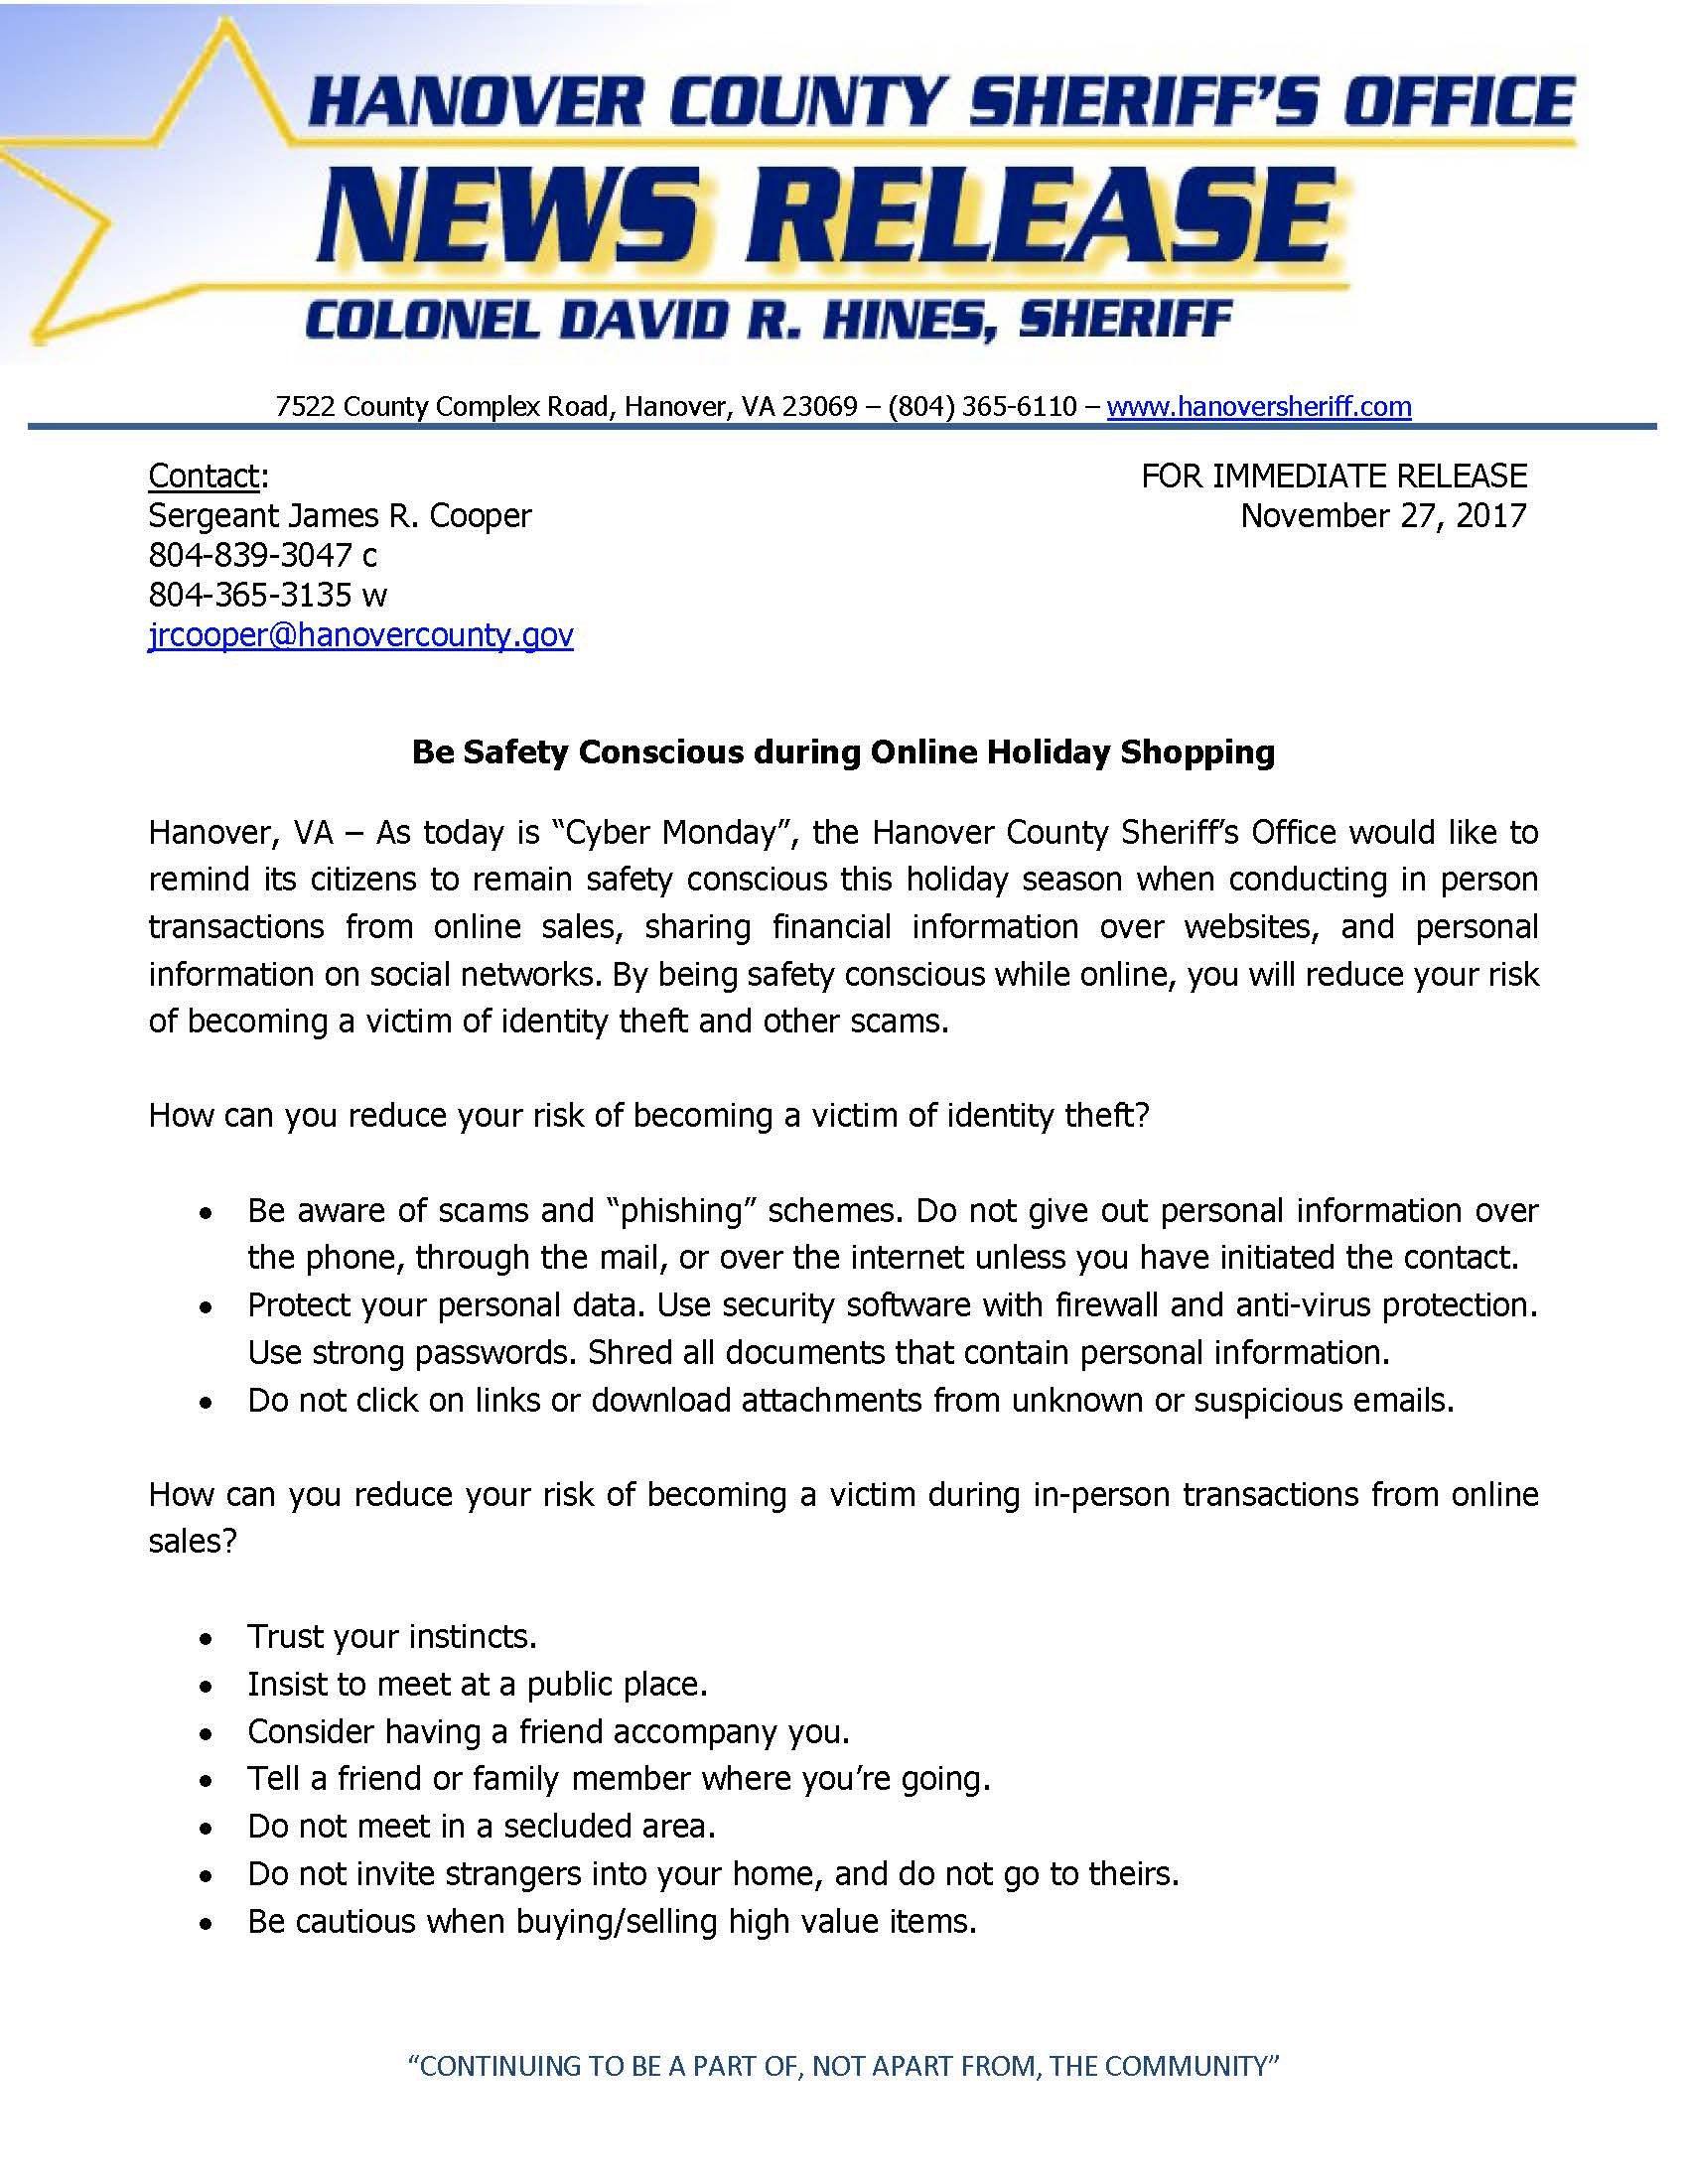 HCSO - Be Safety Conscious During Online Holiday Shopping- Nov. 27, 2017_Page_1